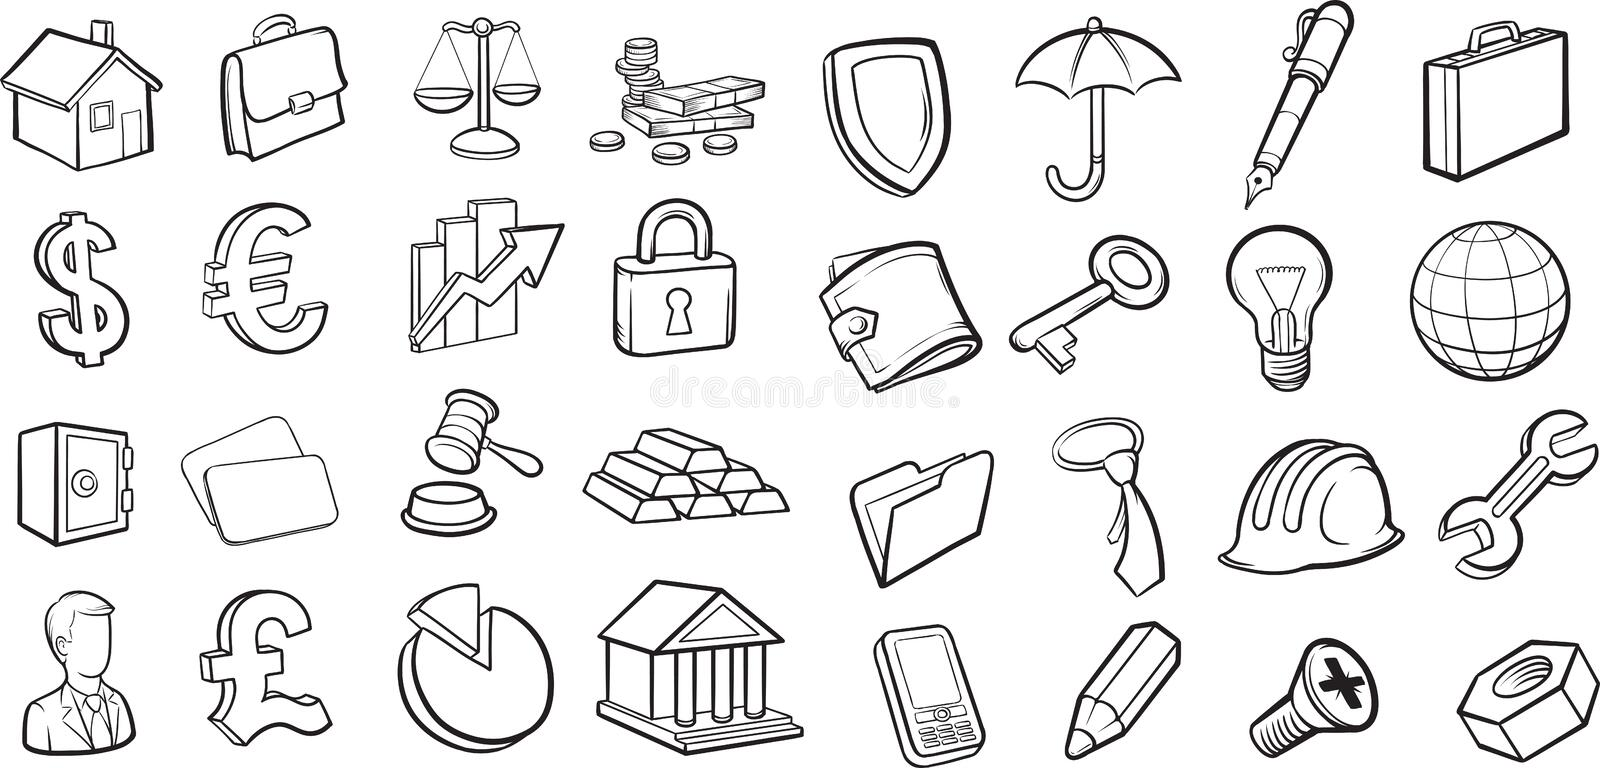 Whiteboard drawing - business and finance icons collection. Black and white isolated line vector illustration for coloring page or whiteboard presentation stock illustration